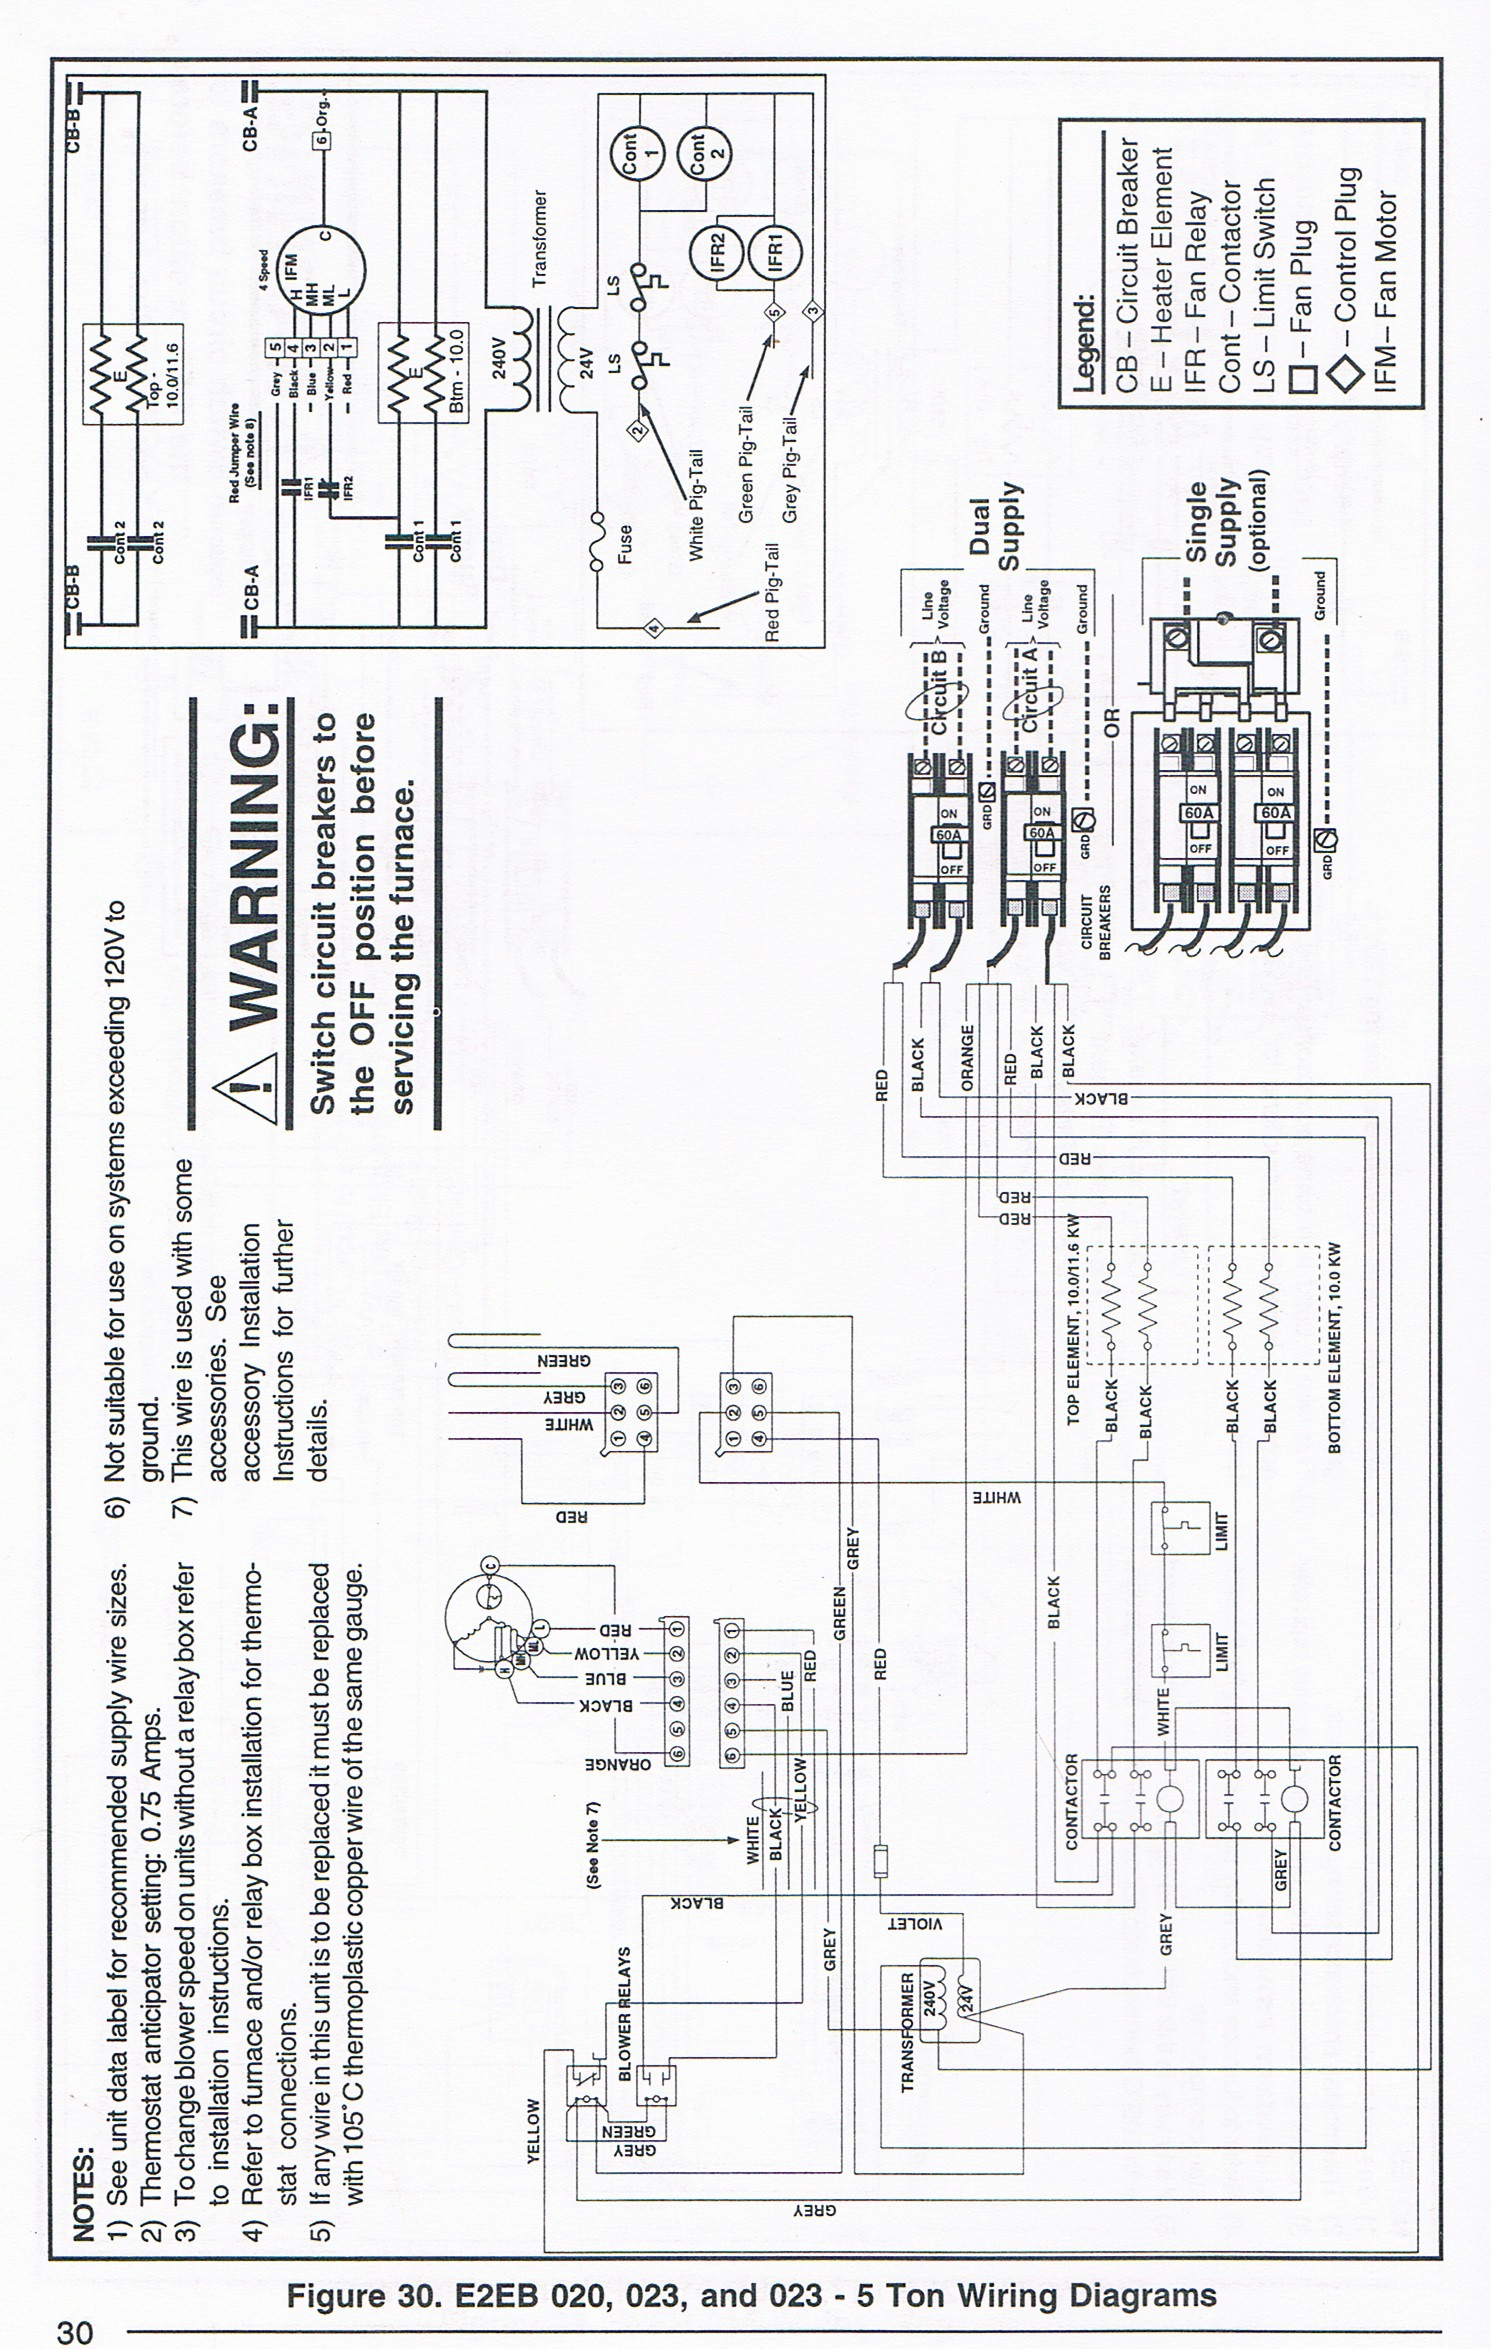 Honeywell Thermostat T8411r Wiring Diagram. diagram 2012